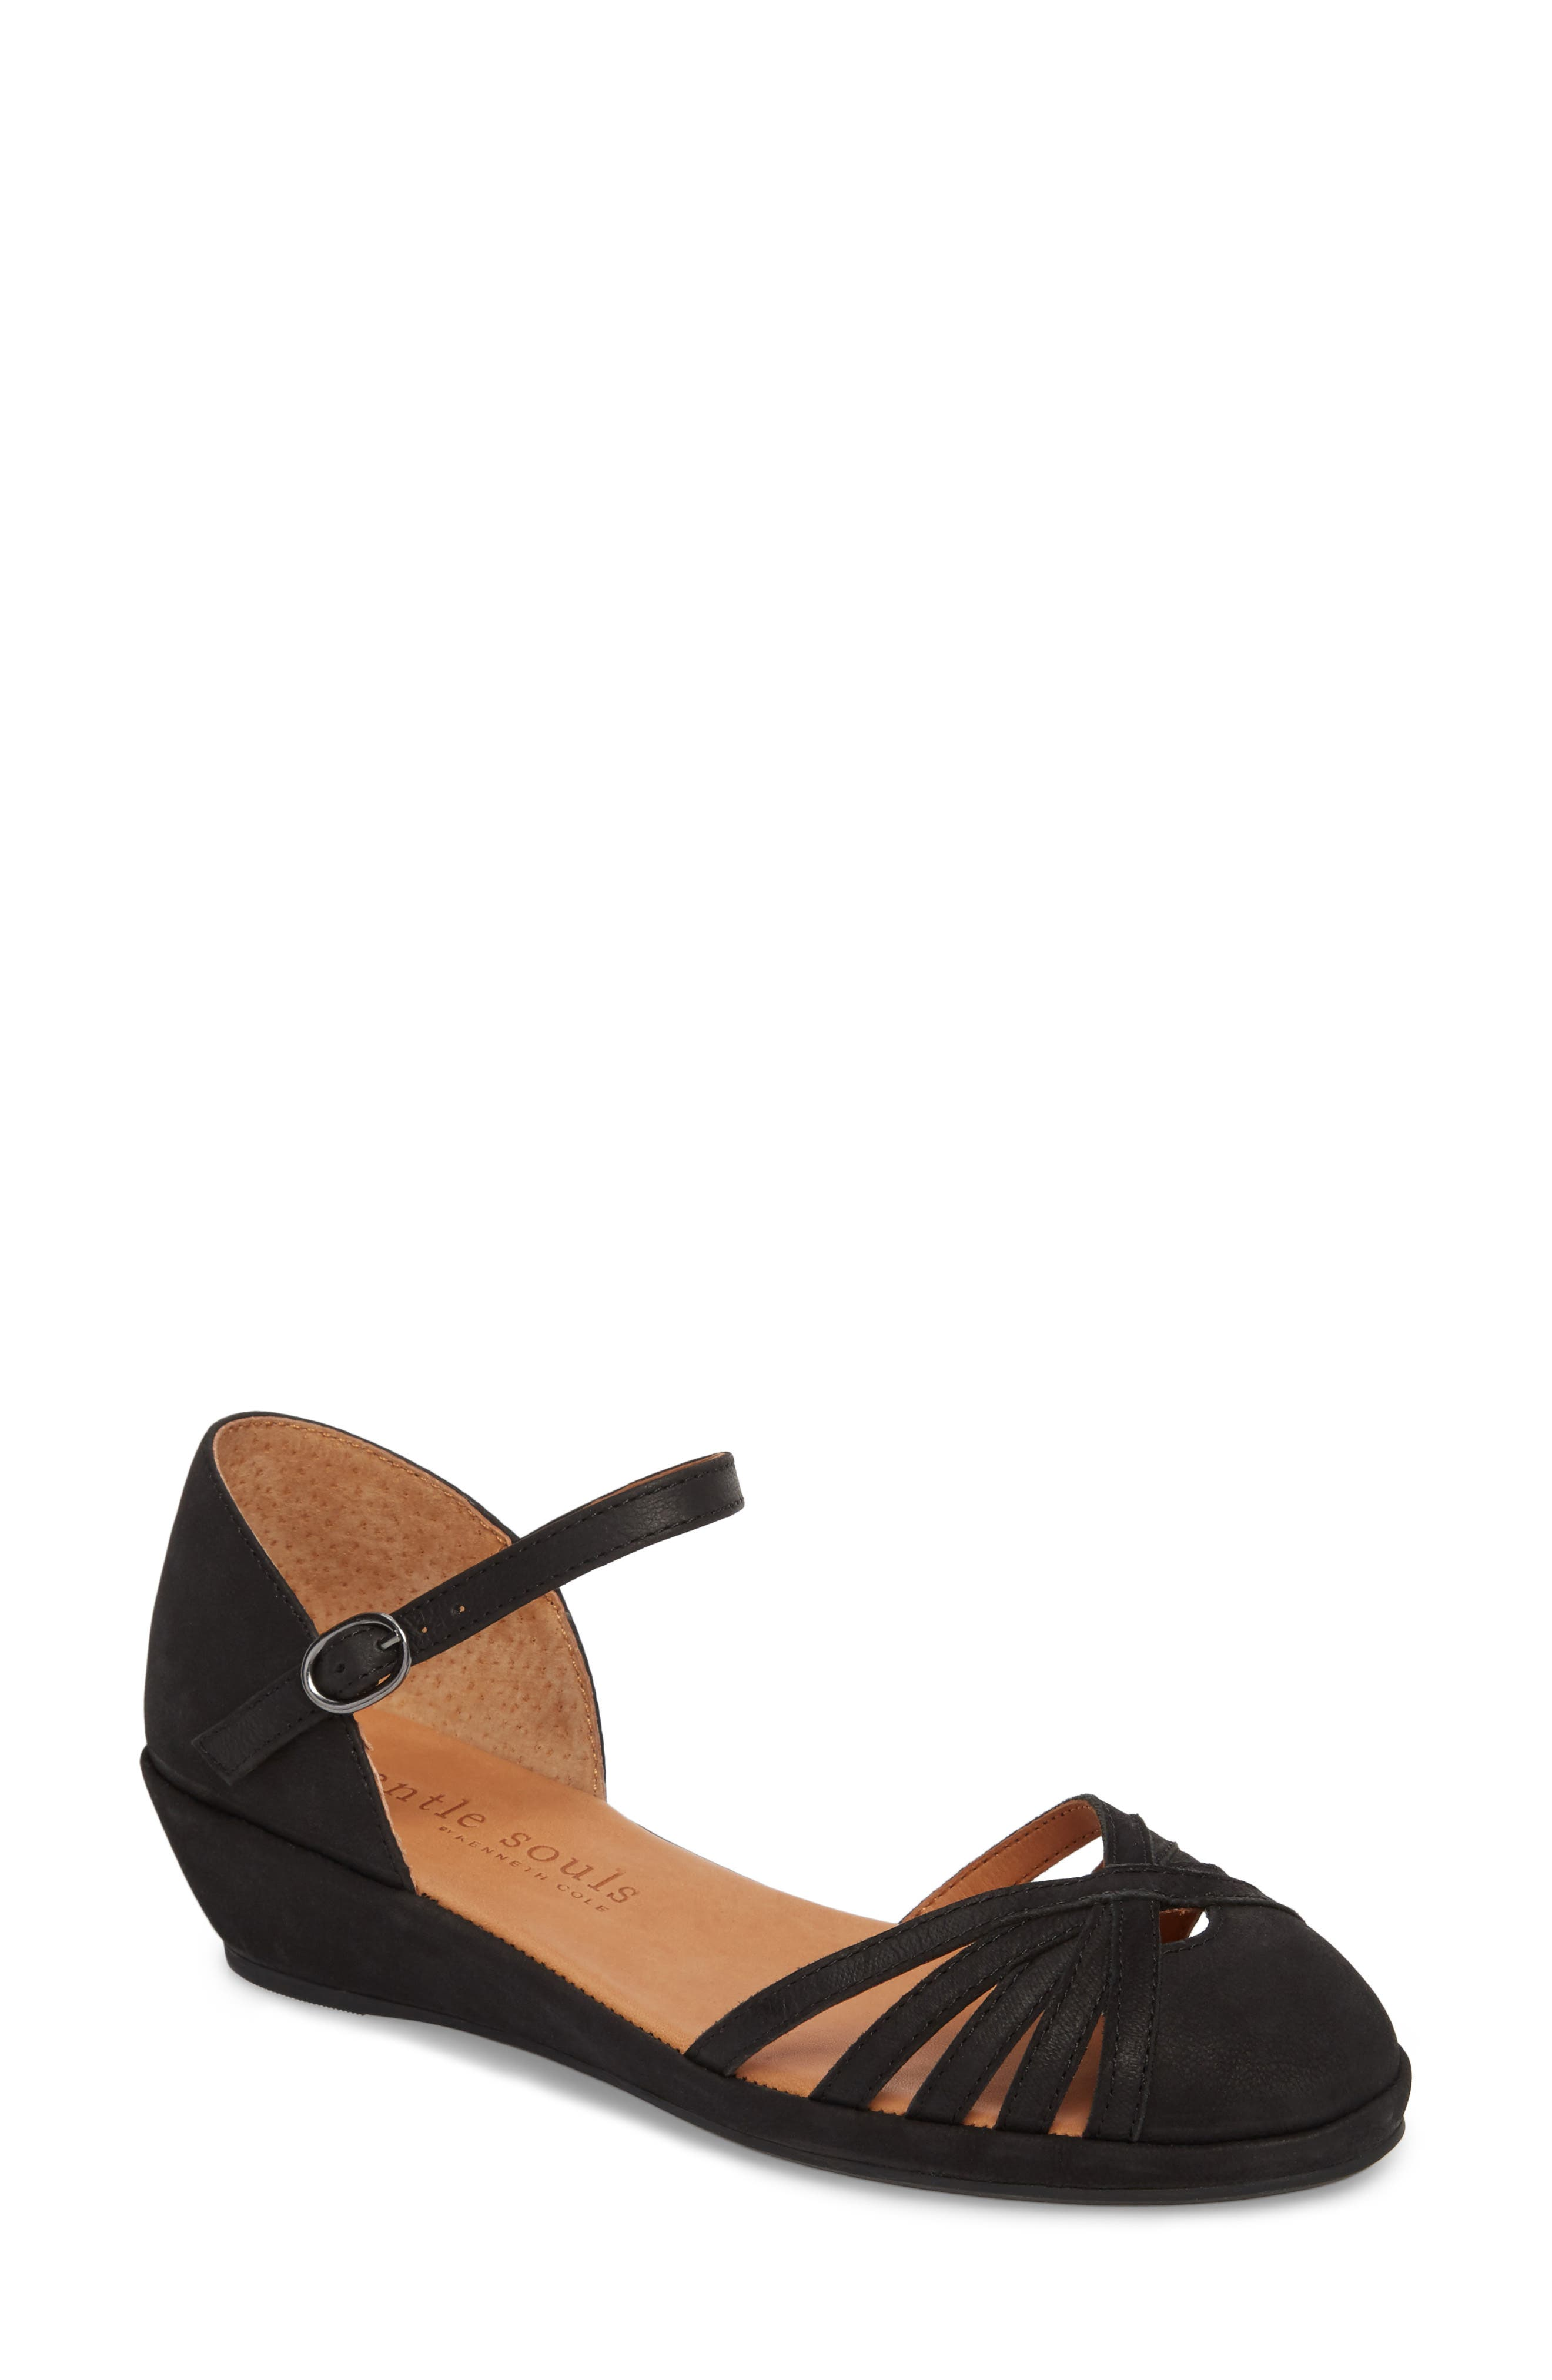 Gentle Souls By Kenneth Cole Naira Wedge- Black